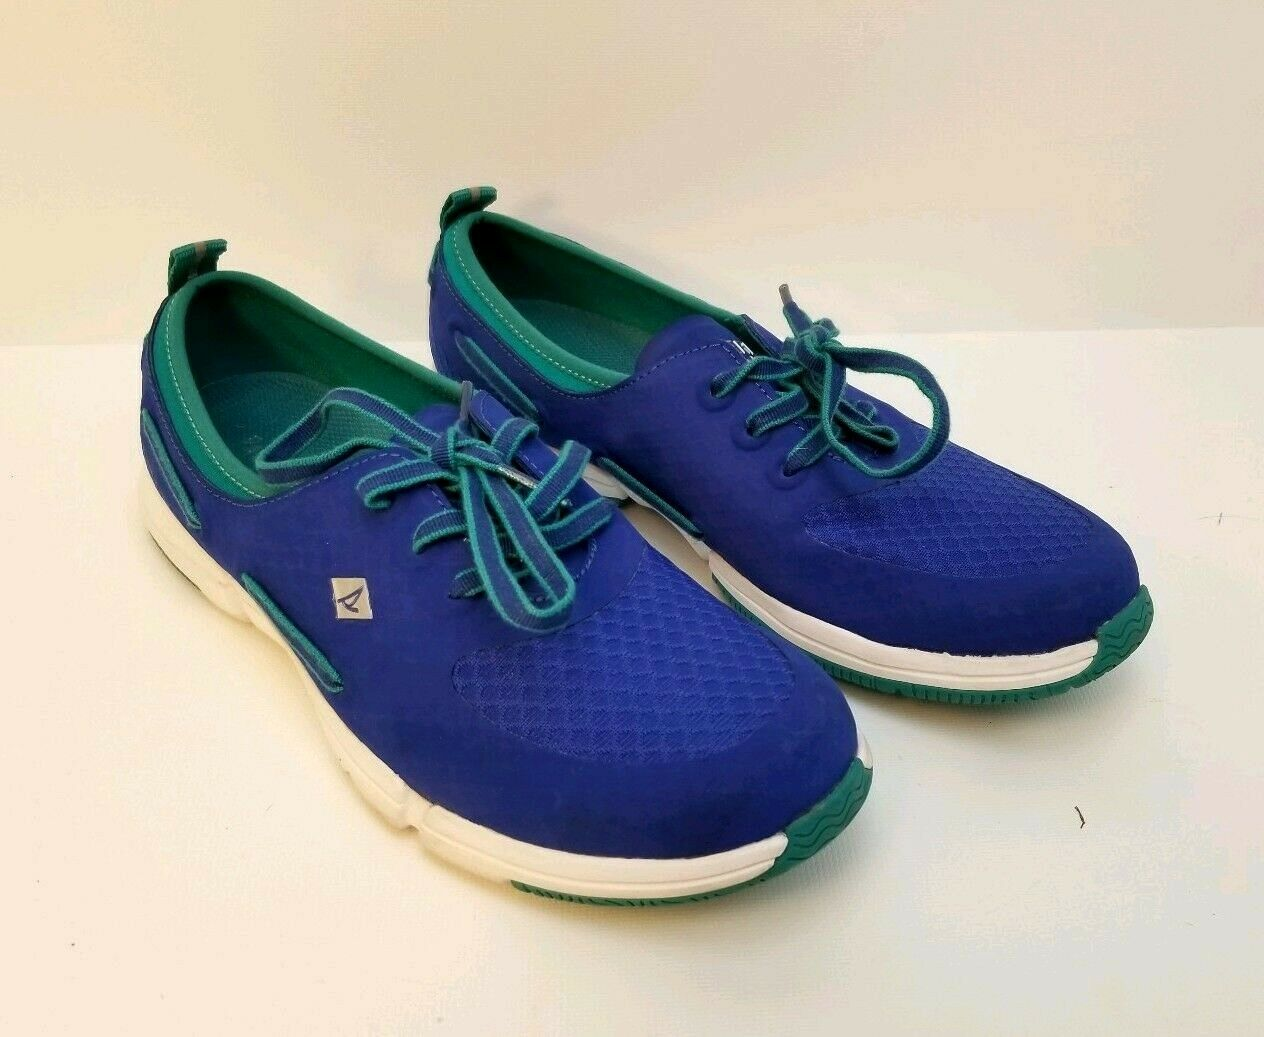 Womens Paul Sperry STS95481 Size 7.5M Blue Teal Boat Style Casual Shoes E16